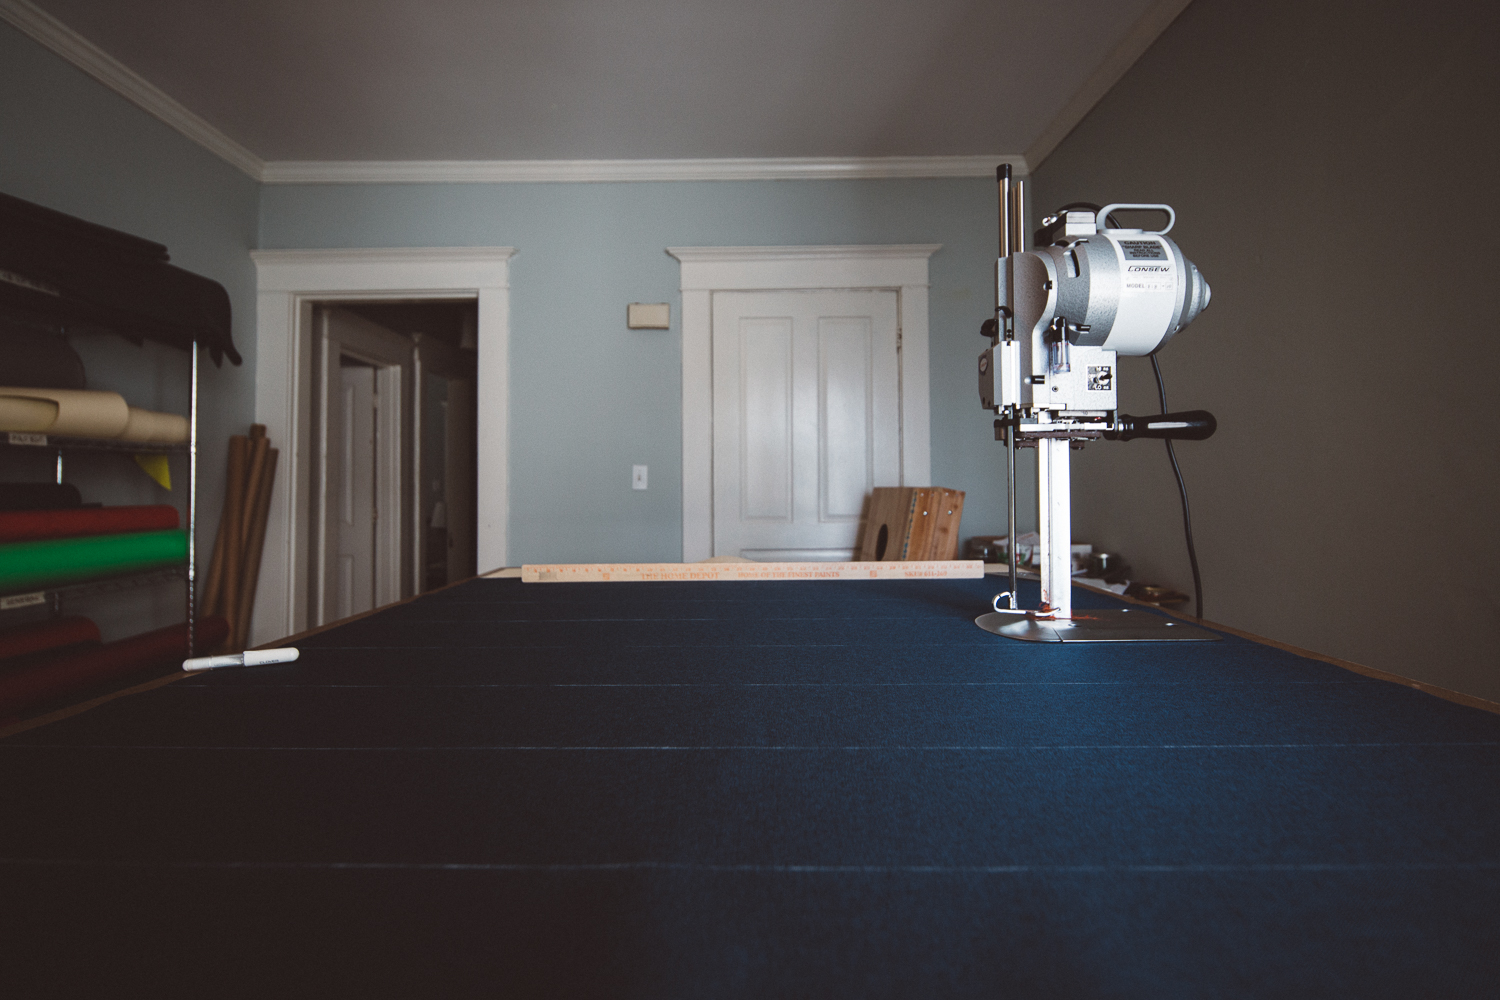 Preparation and cutting table.